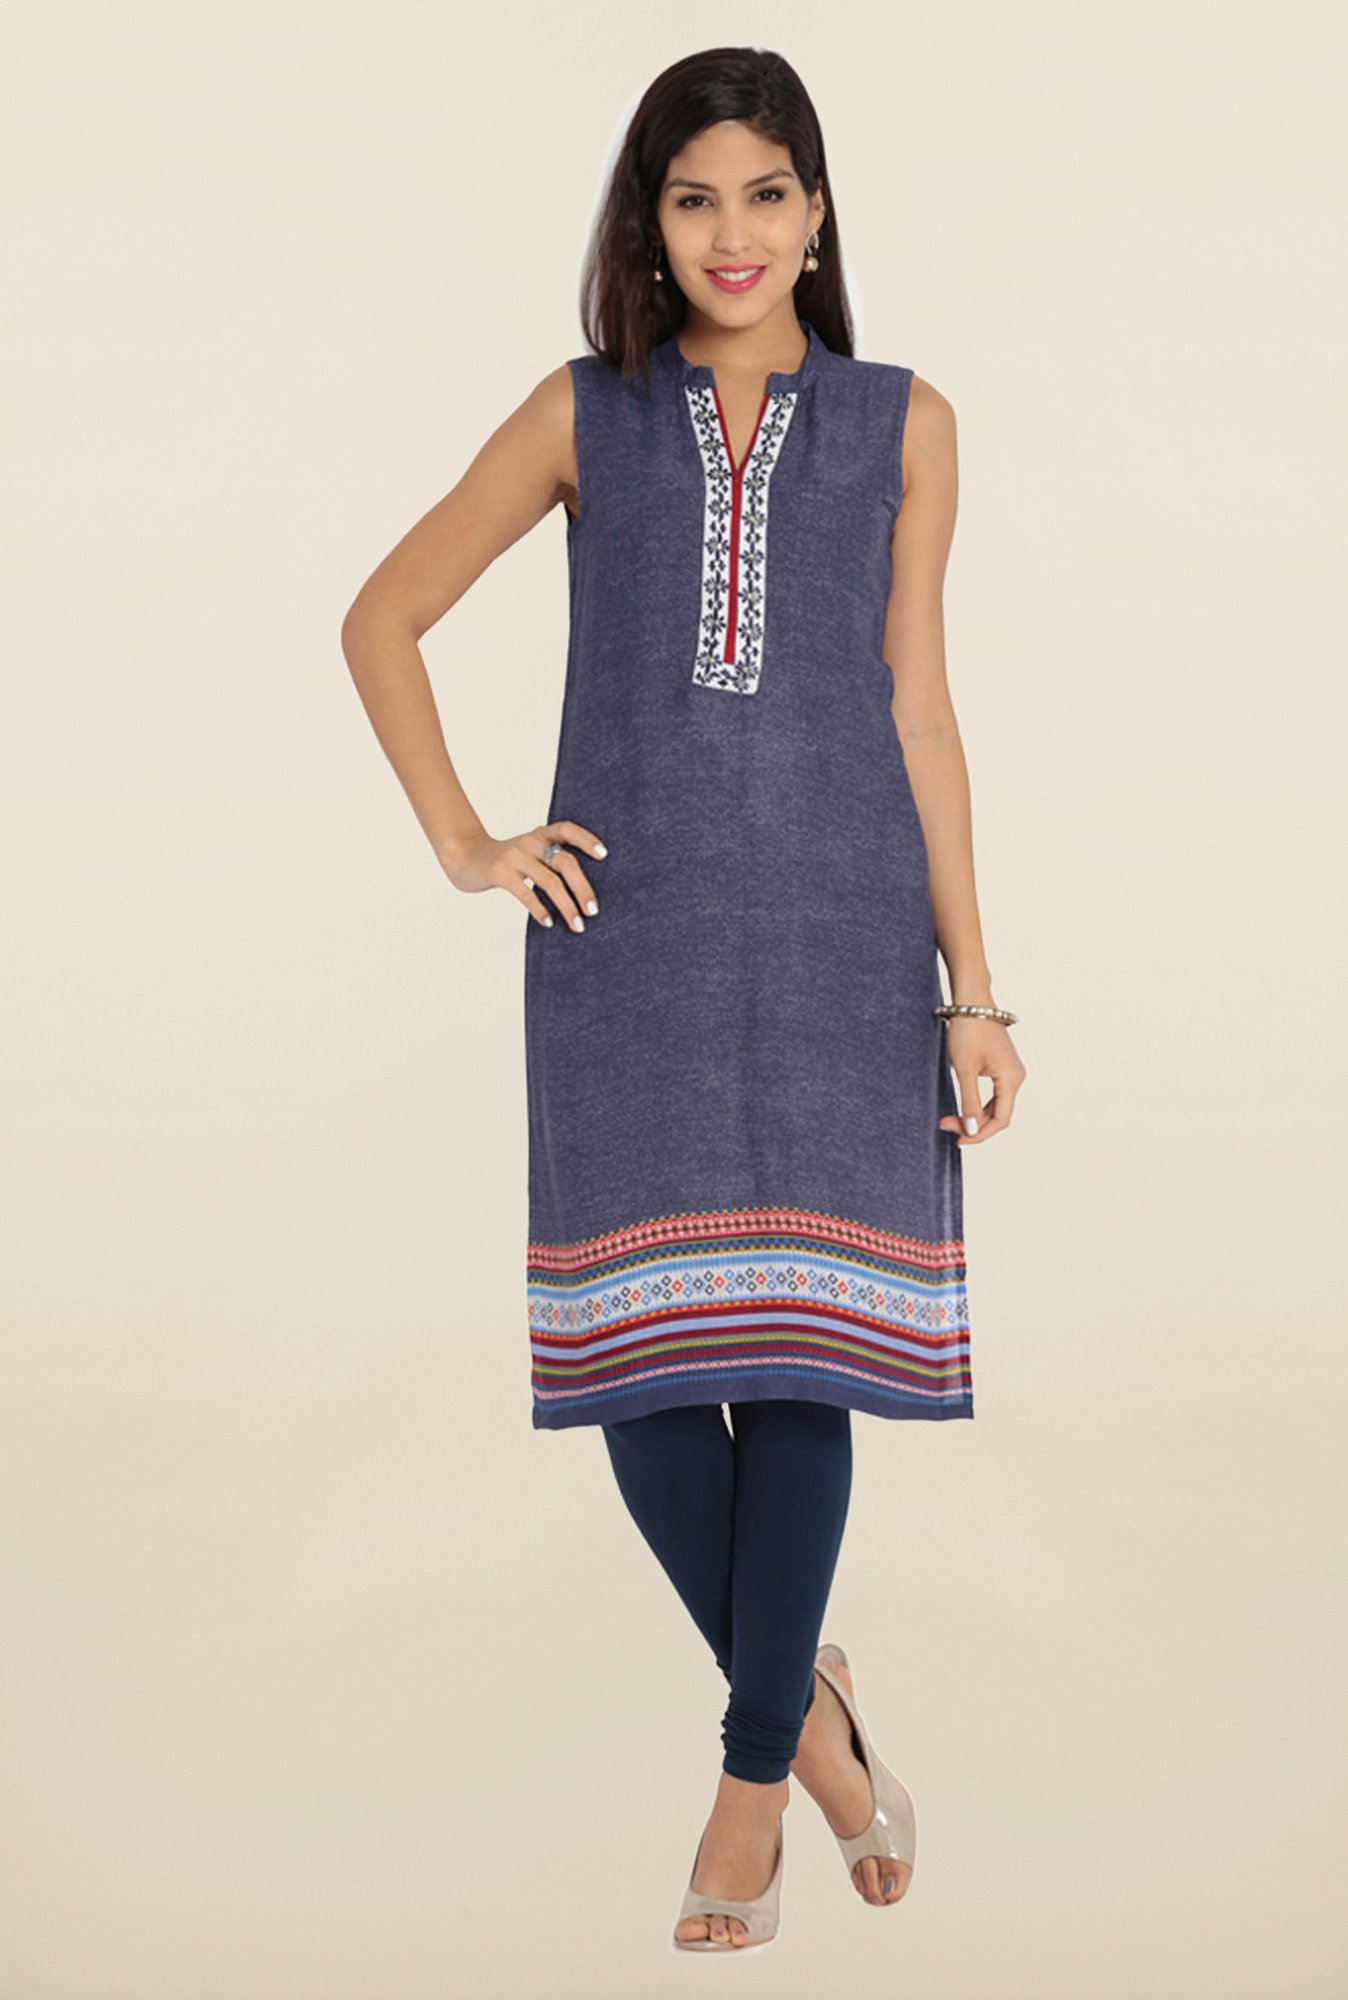 Soch Blue & White Embroidered Kurta